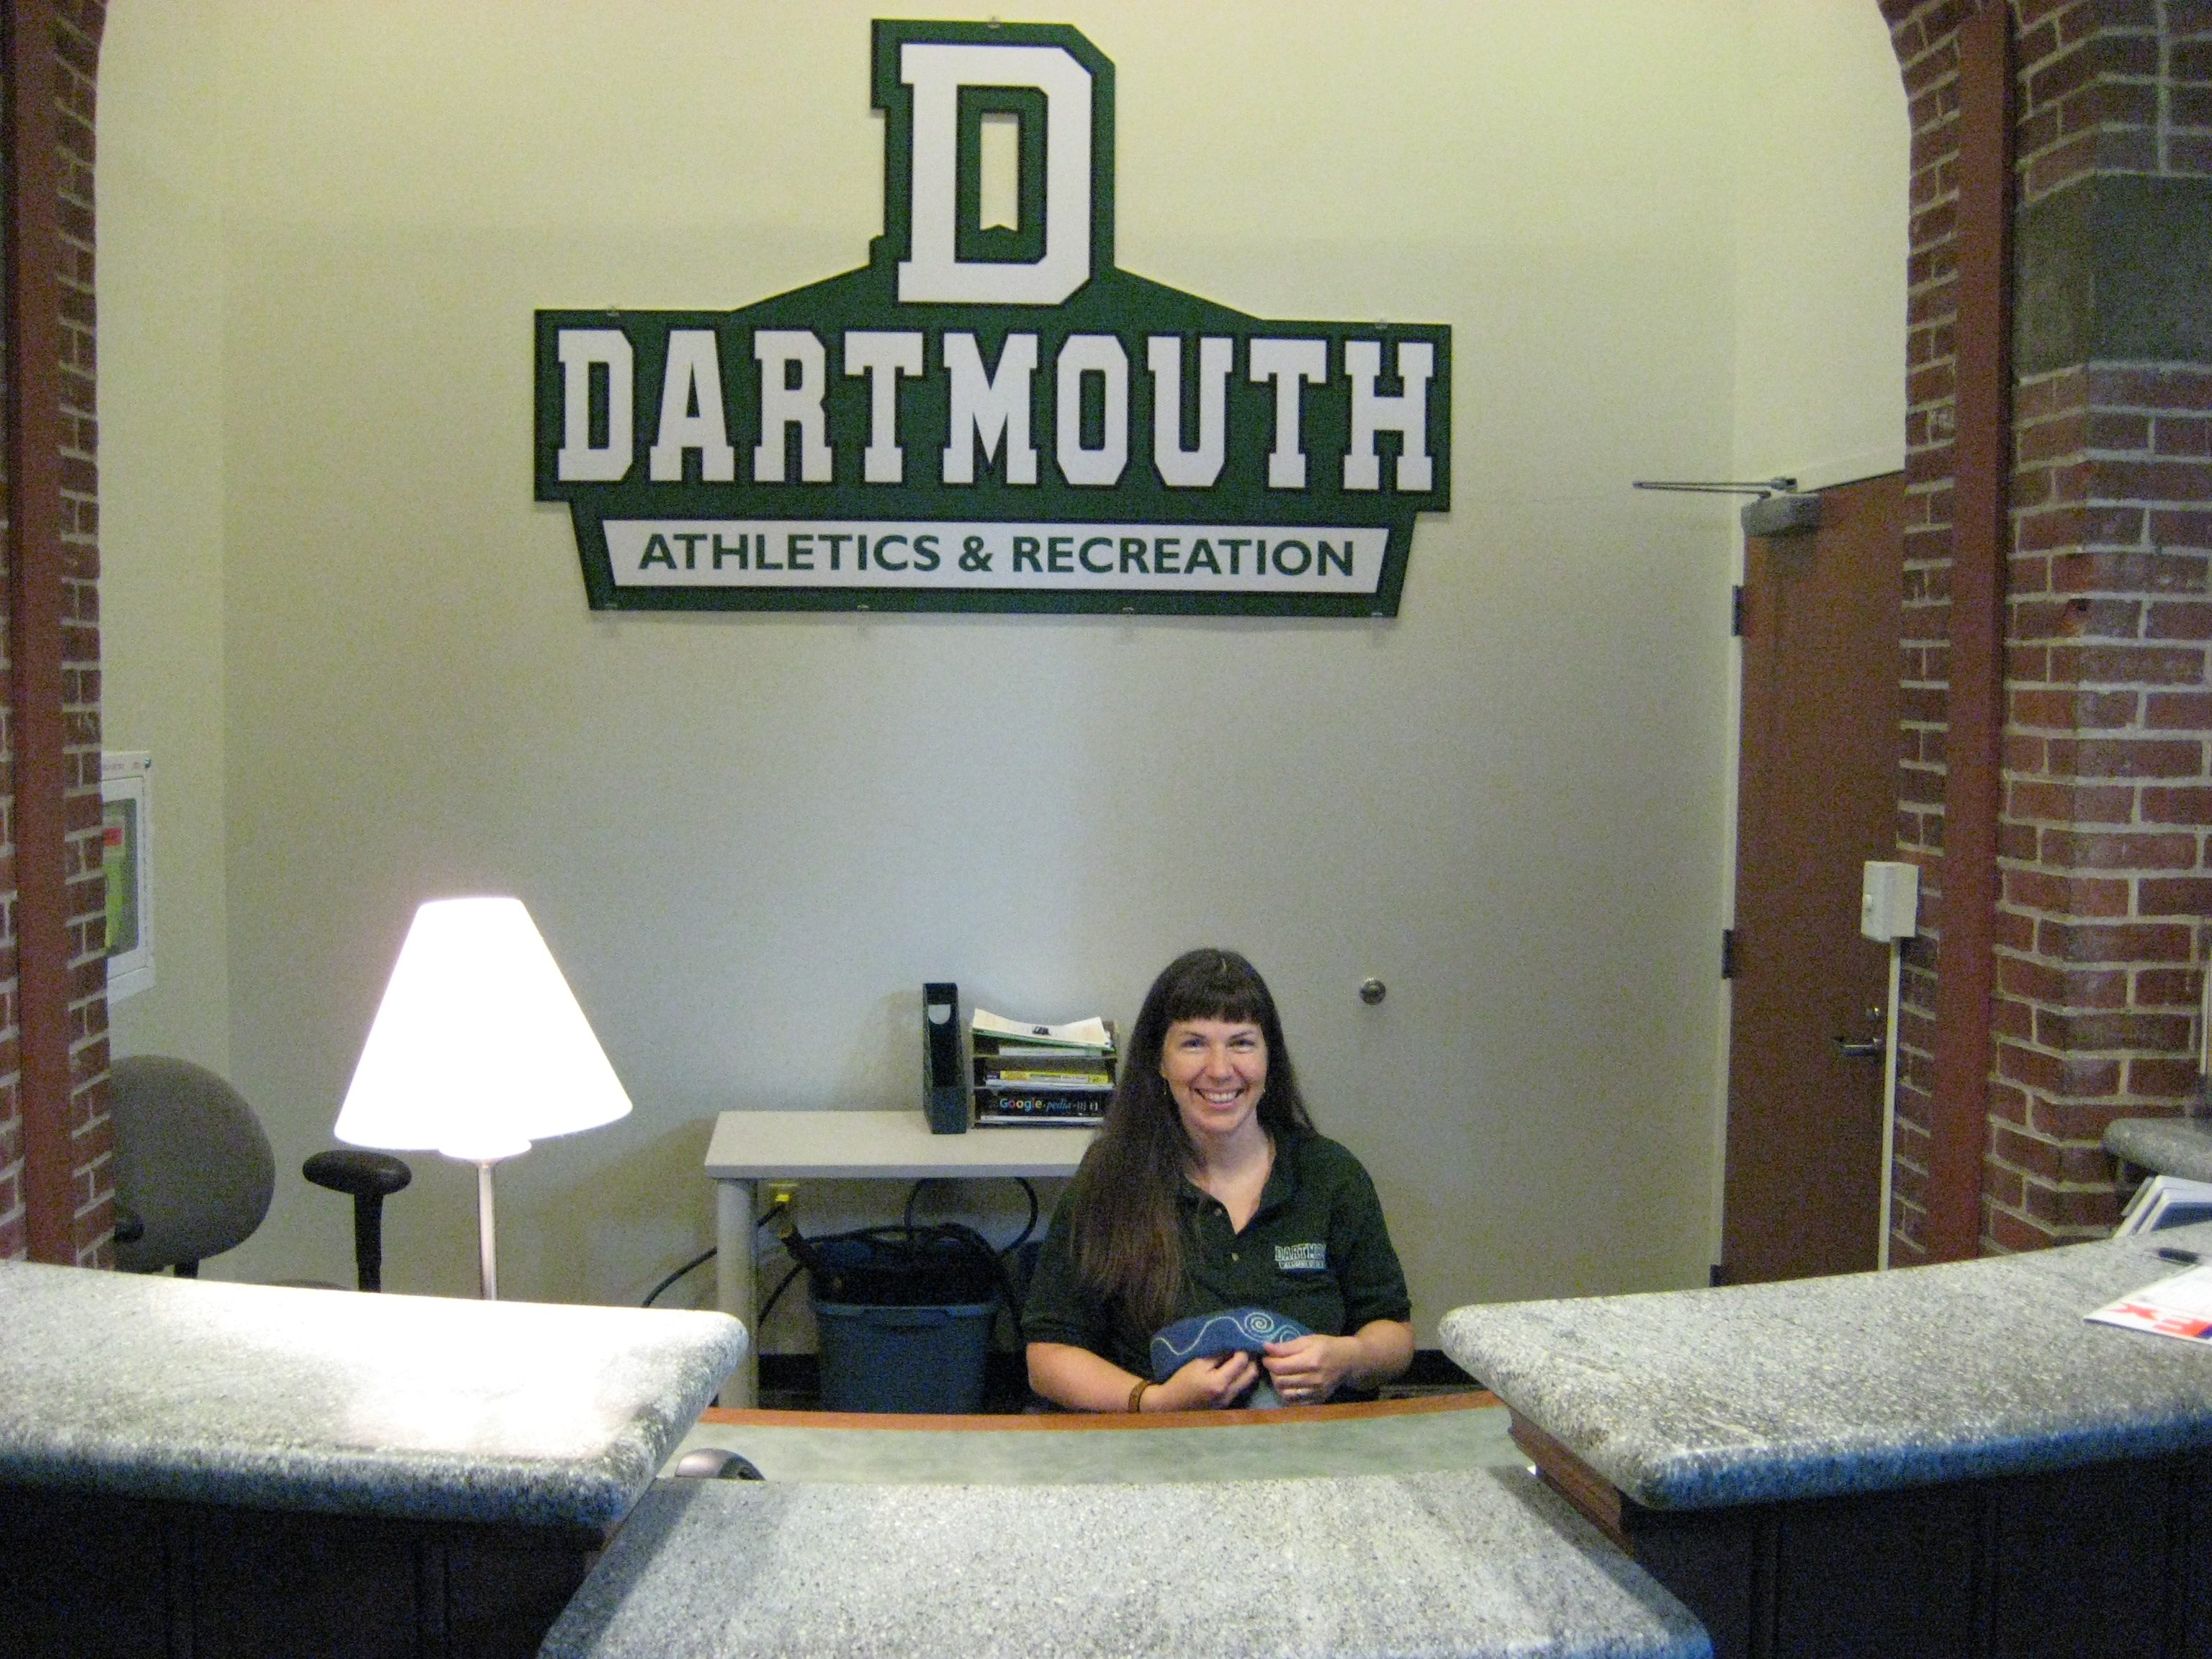 Checking id's at Dartmouth's Alumni Gym while Embroidering Hats